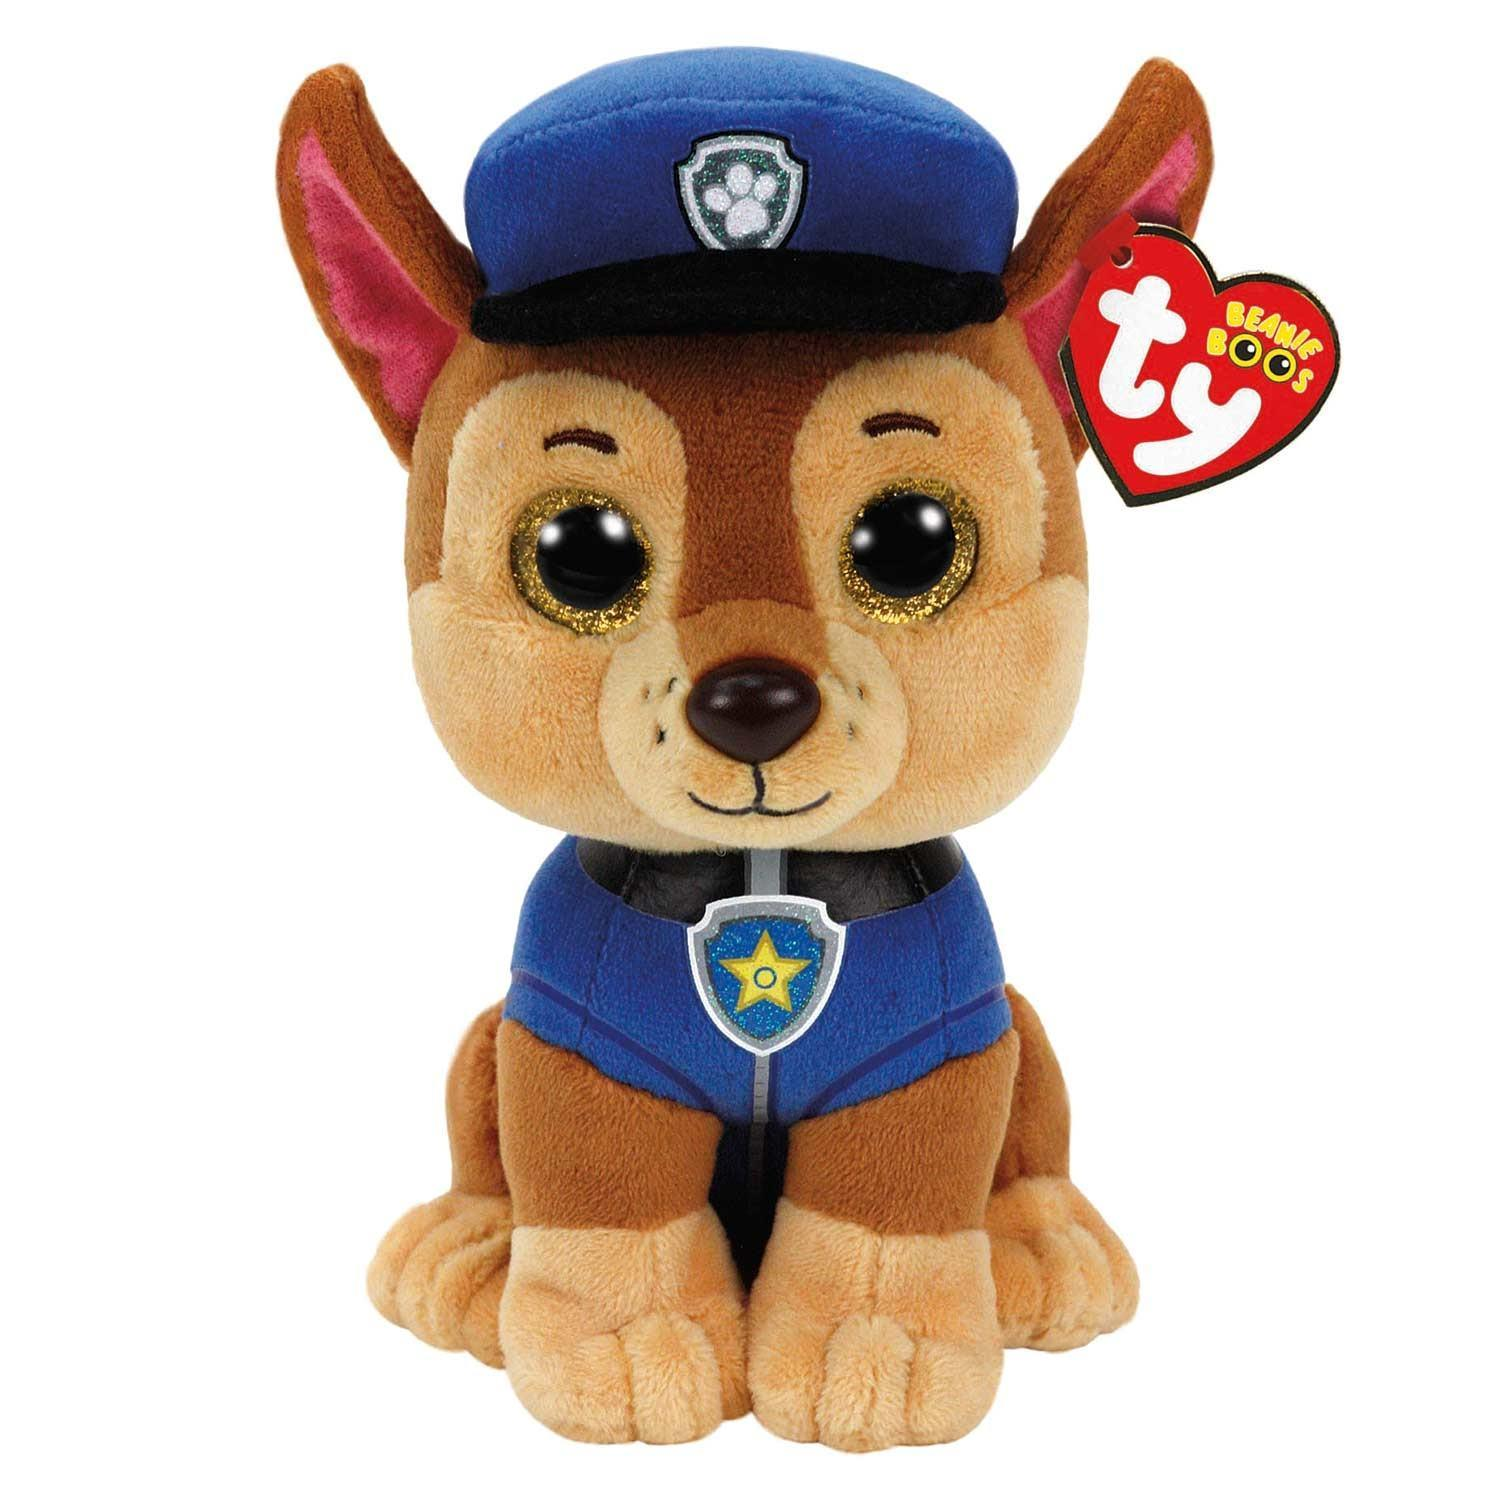 Nickelodeon Paw Patrol Chase soft toy TY